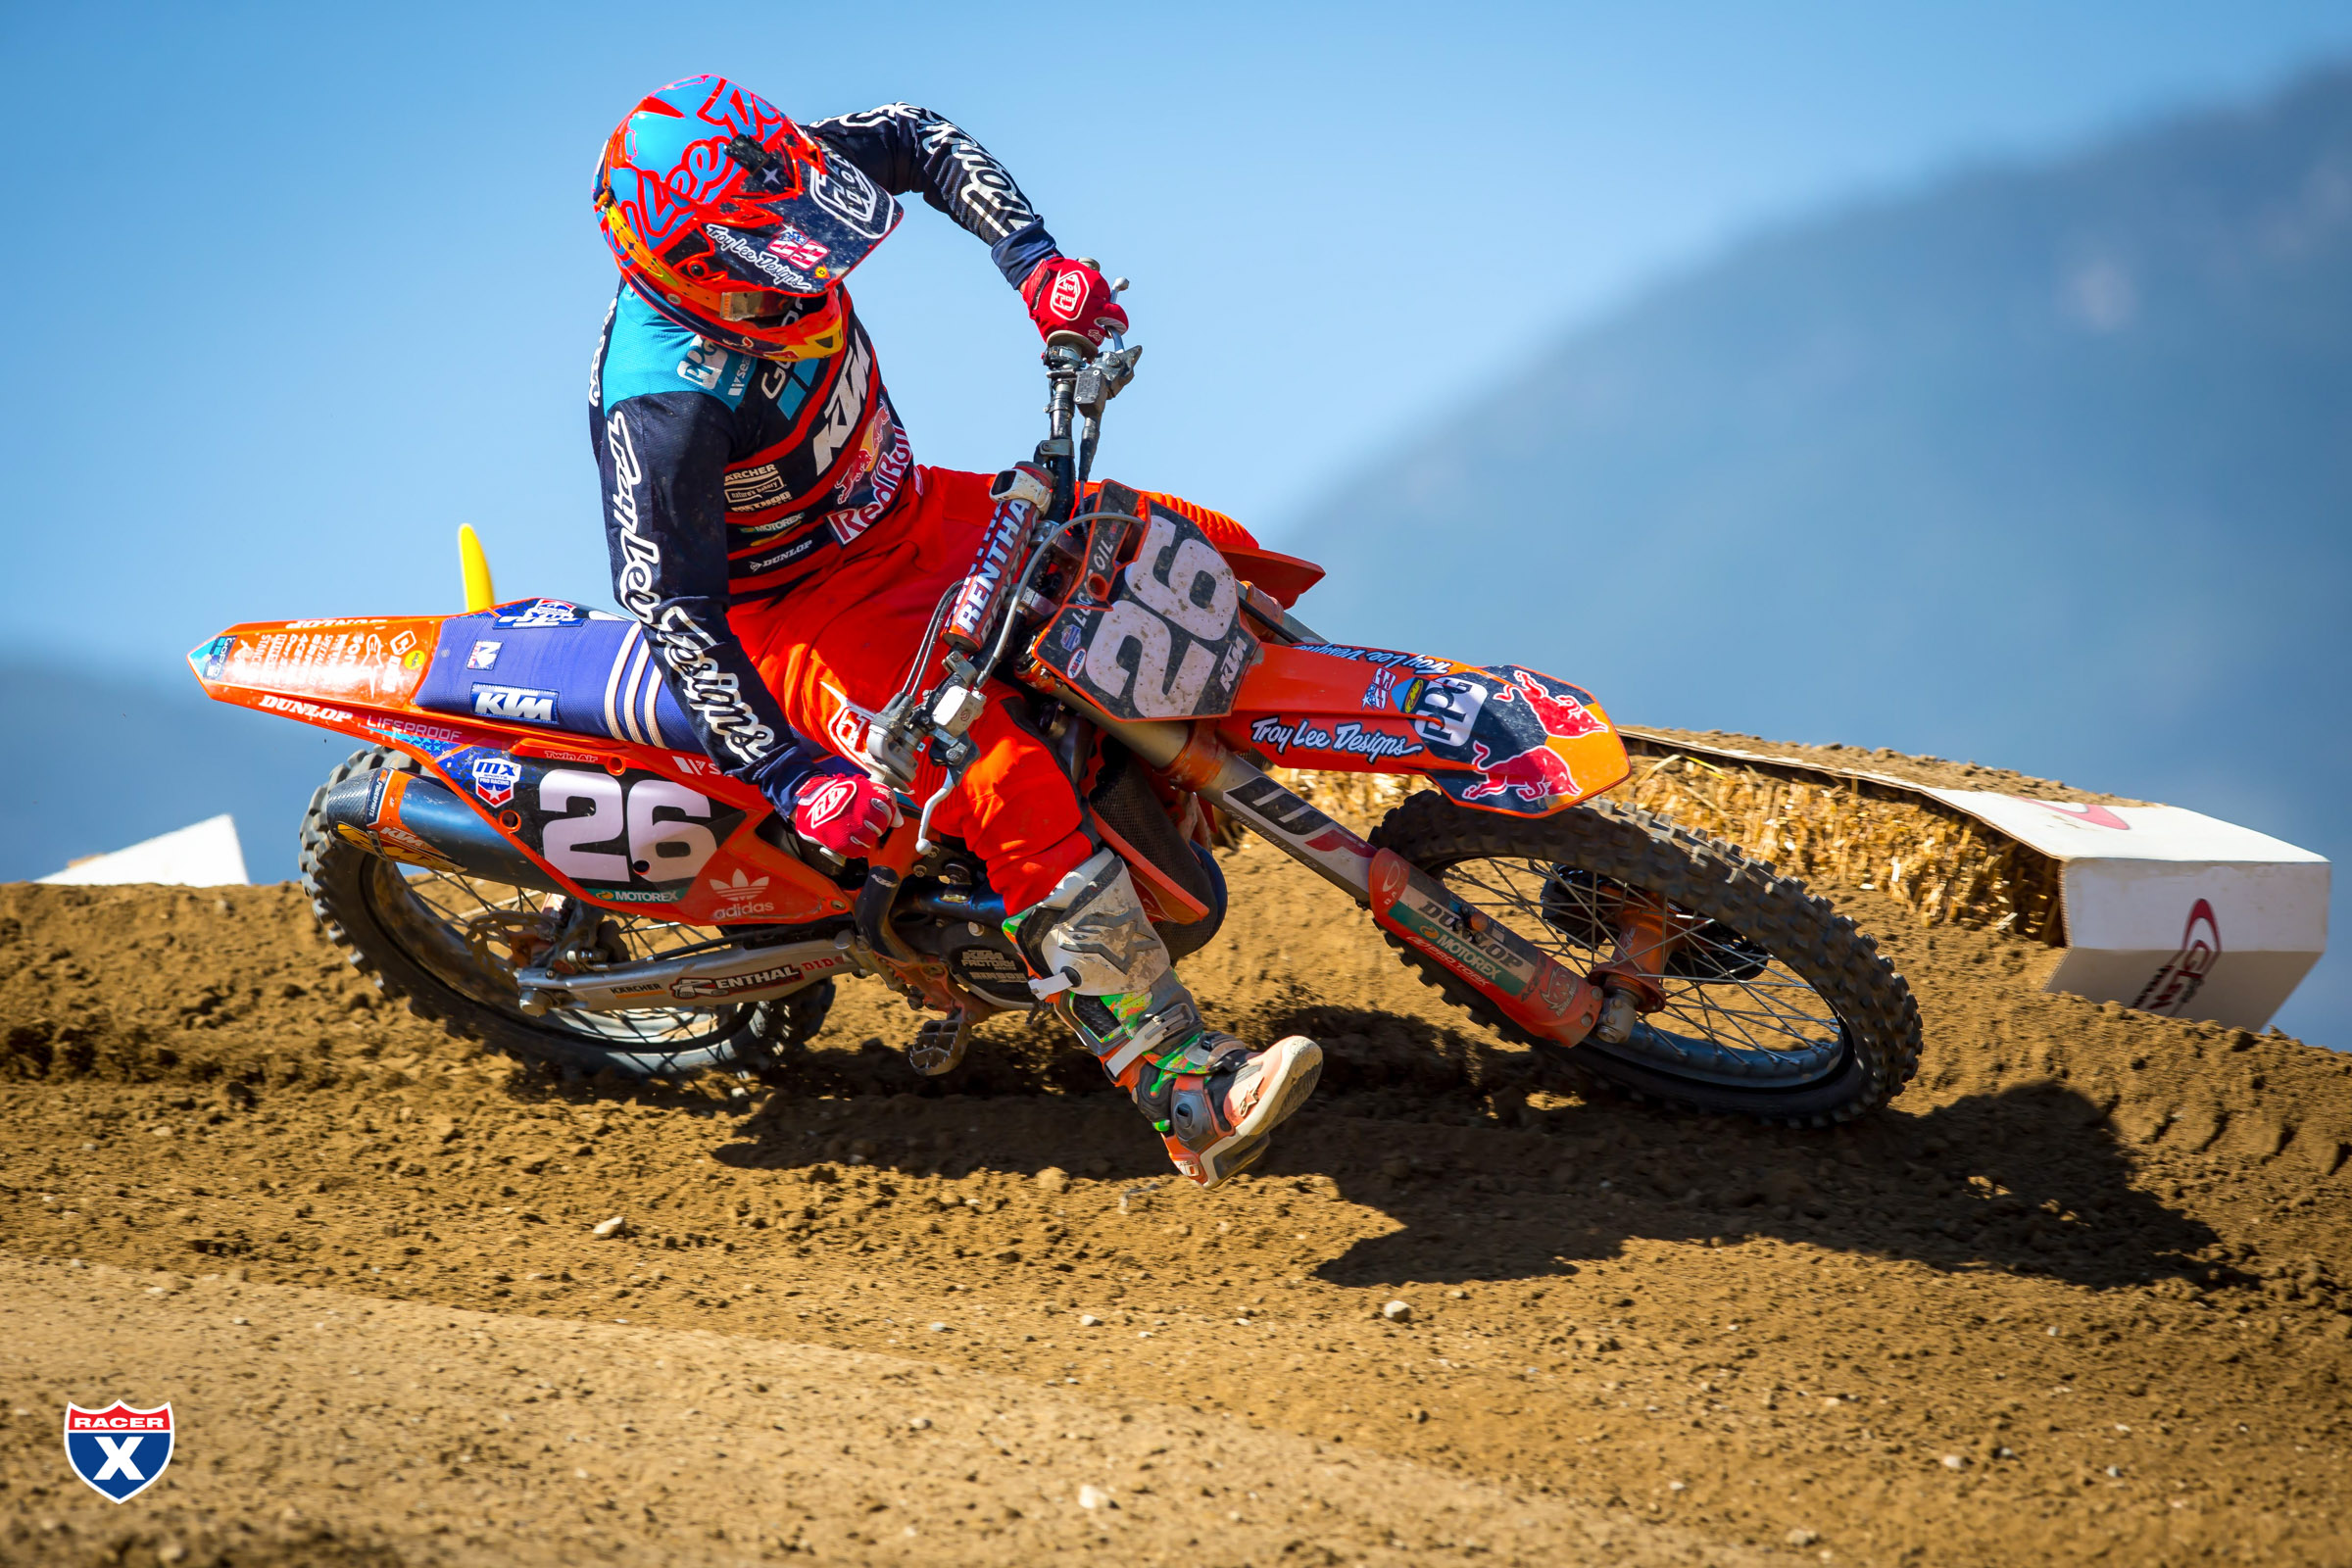 MartinA_MX17_GlenHelen_RS_0310